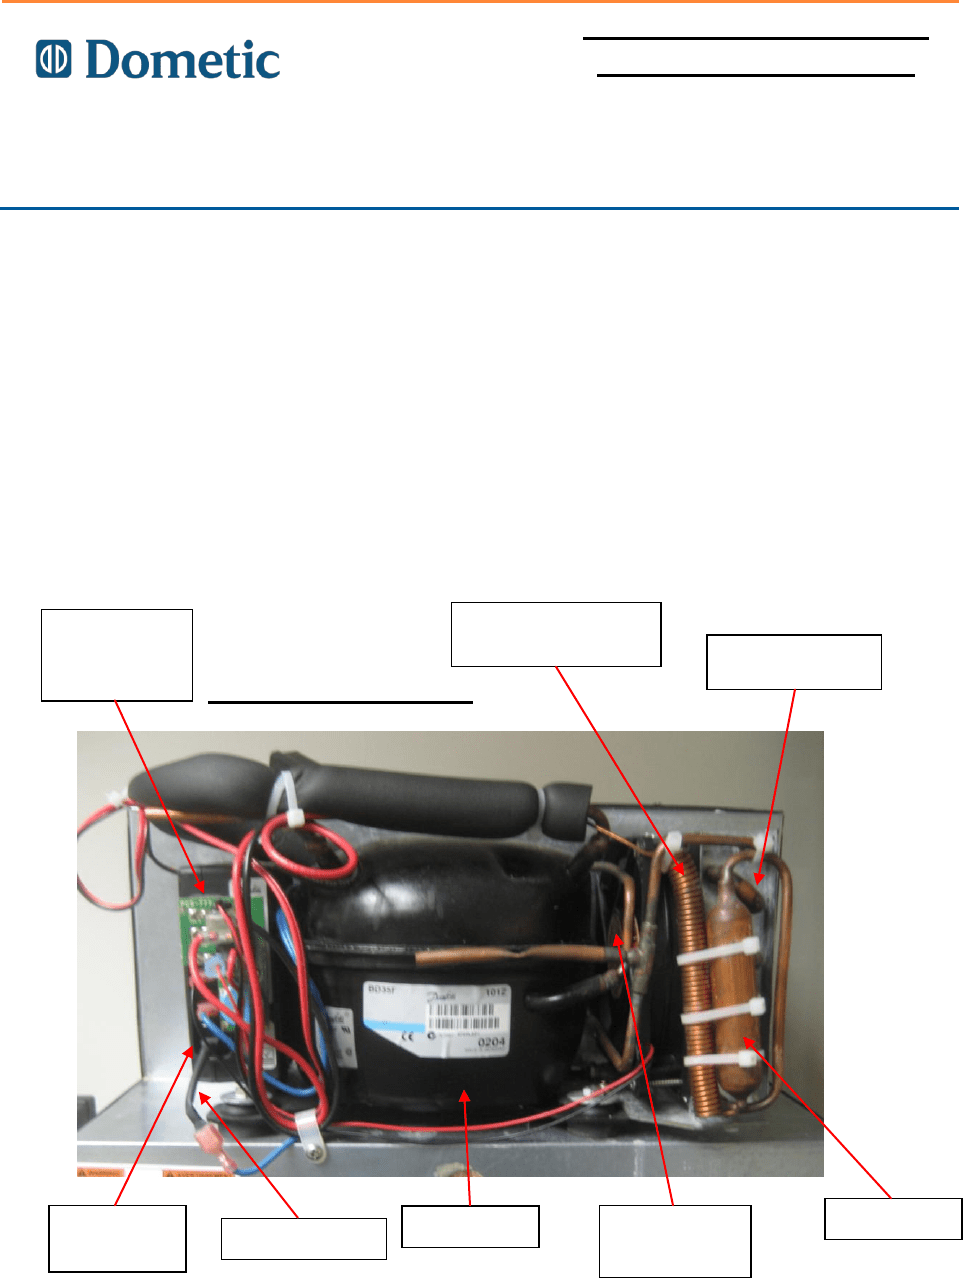 dometic rm1350 wiring diagram 2003 honda accord fuse box refrigerator troubleshooting photos of